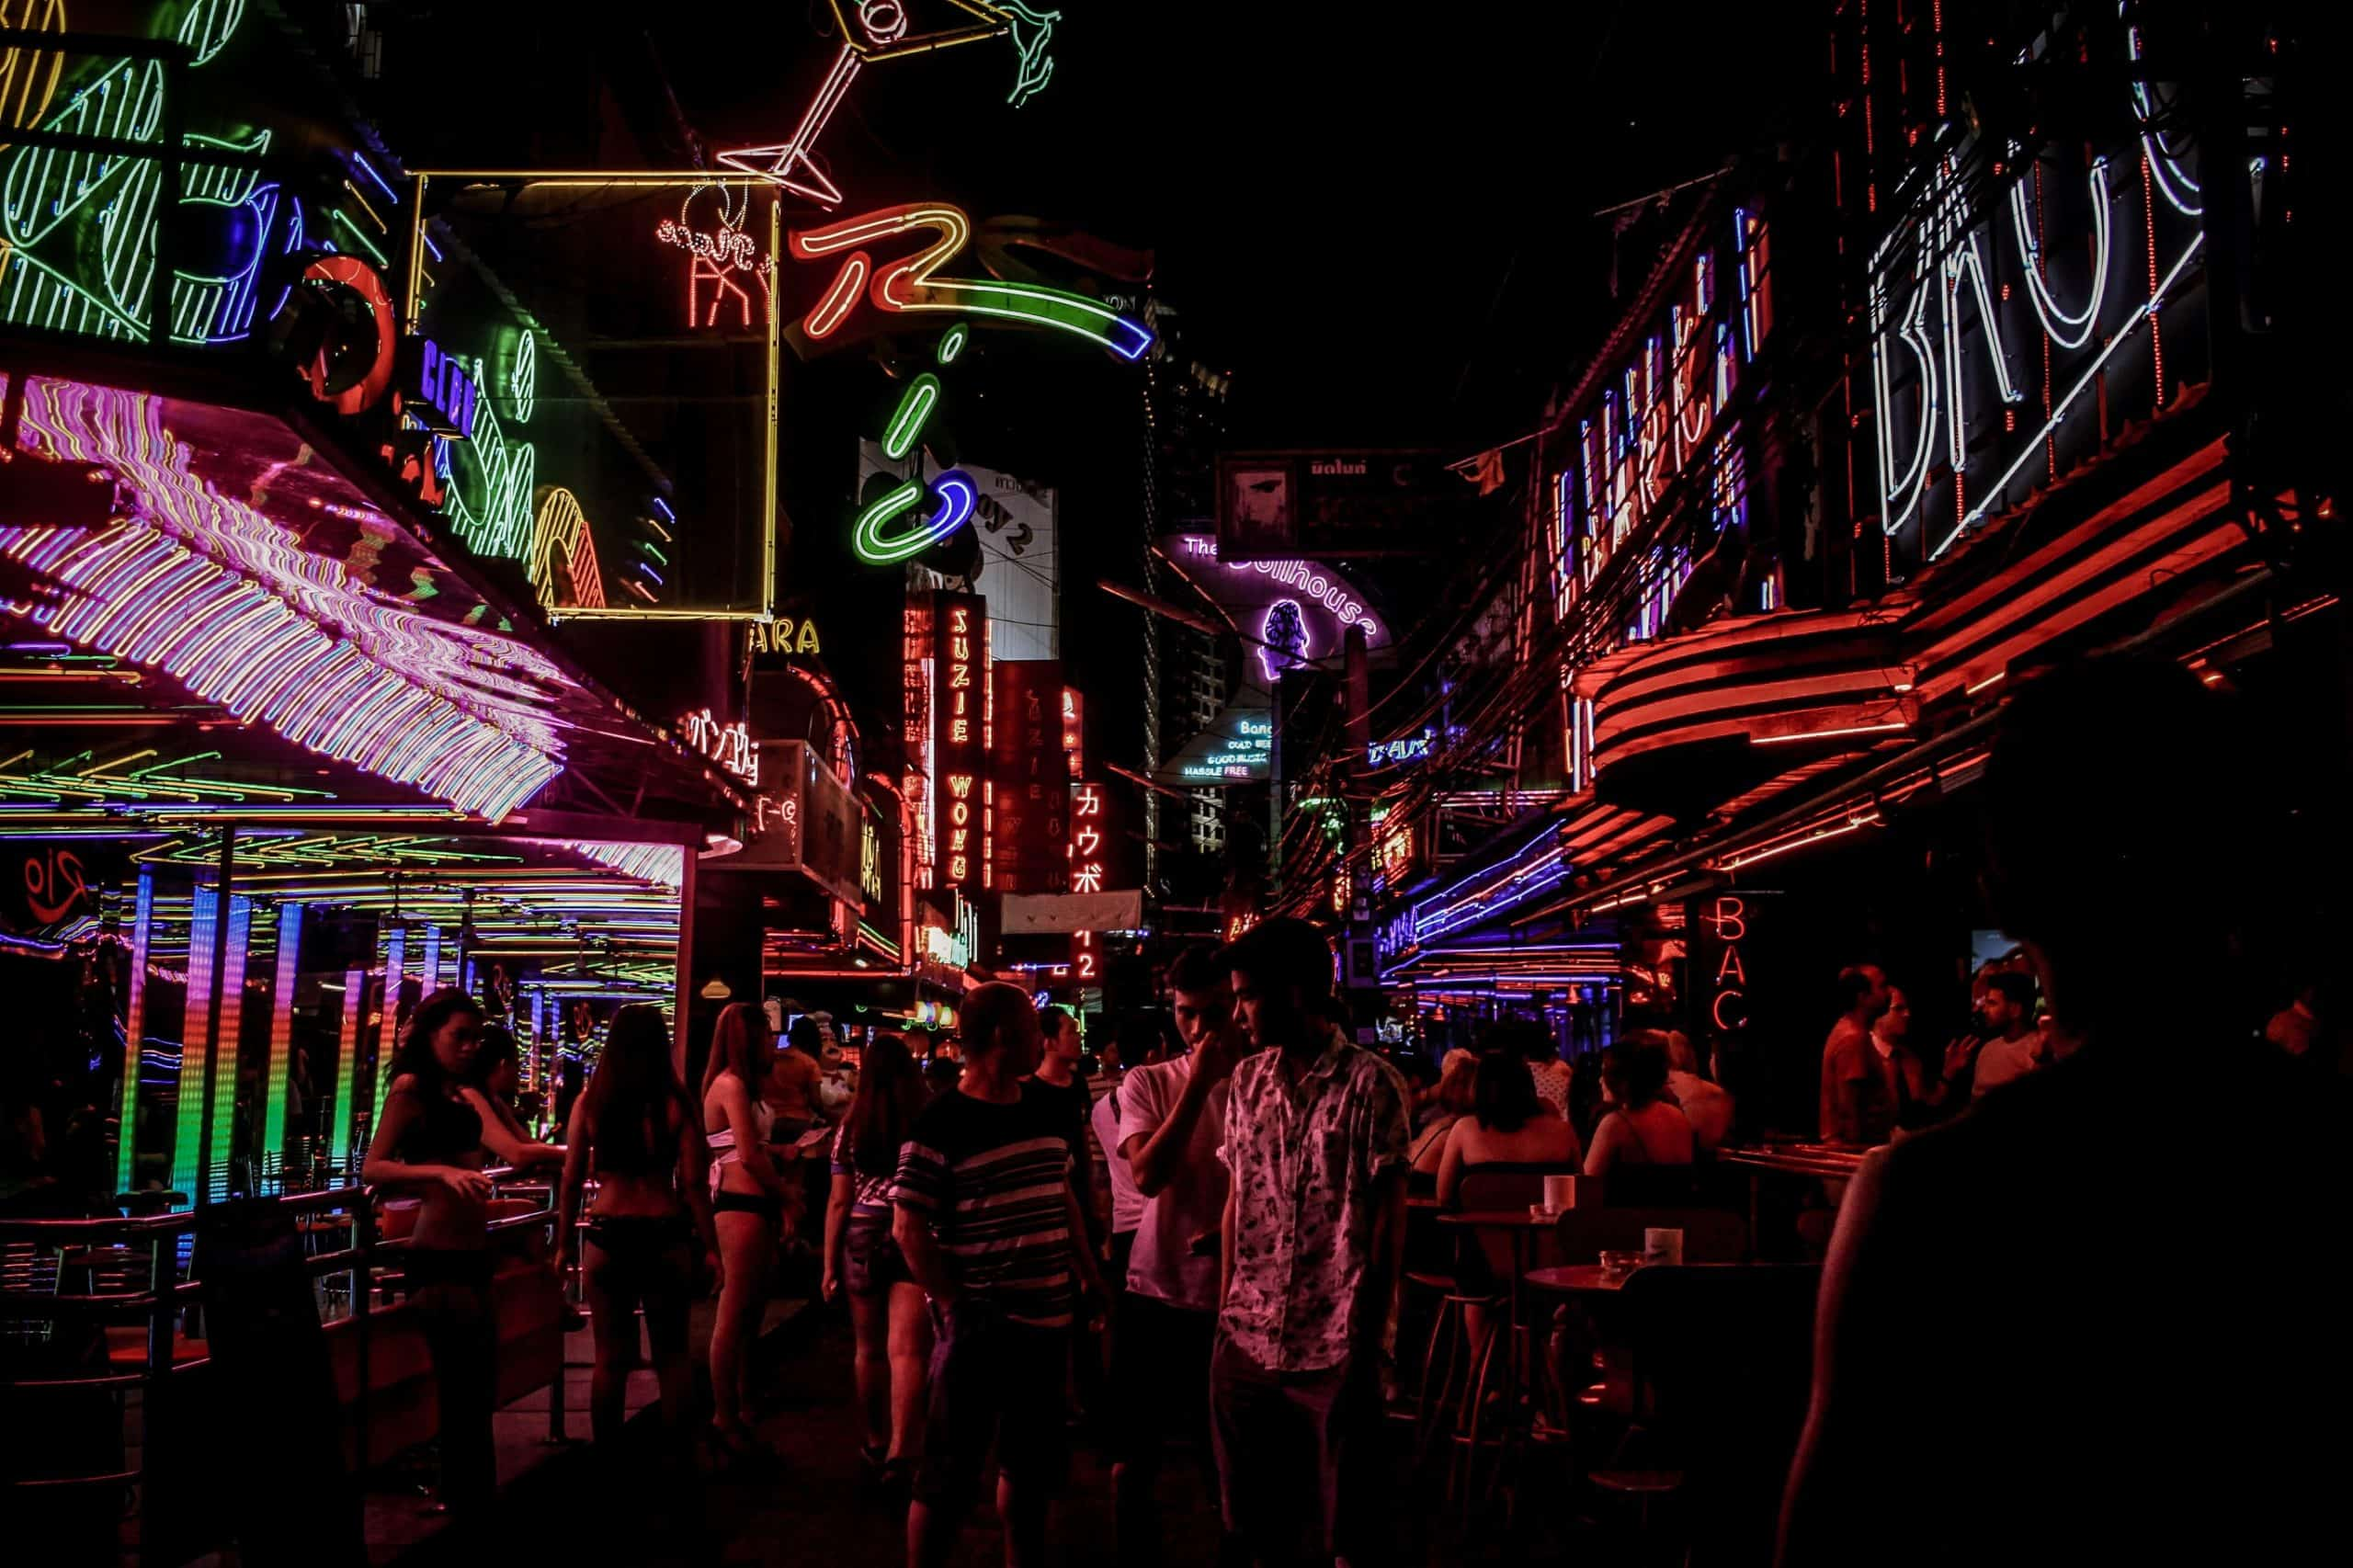 Inside Bangkok Red Light Districts: Neon Lights, Not All Red